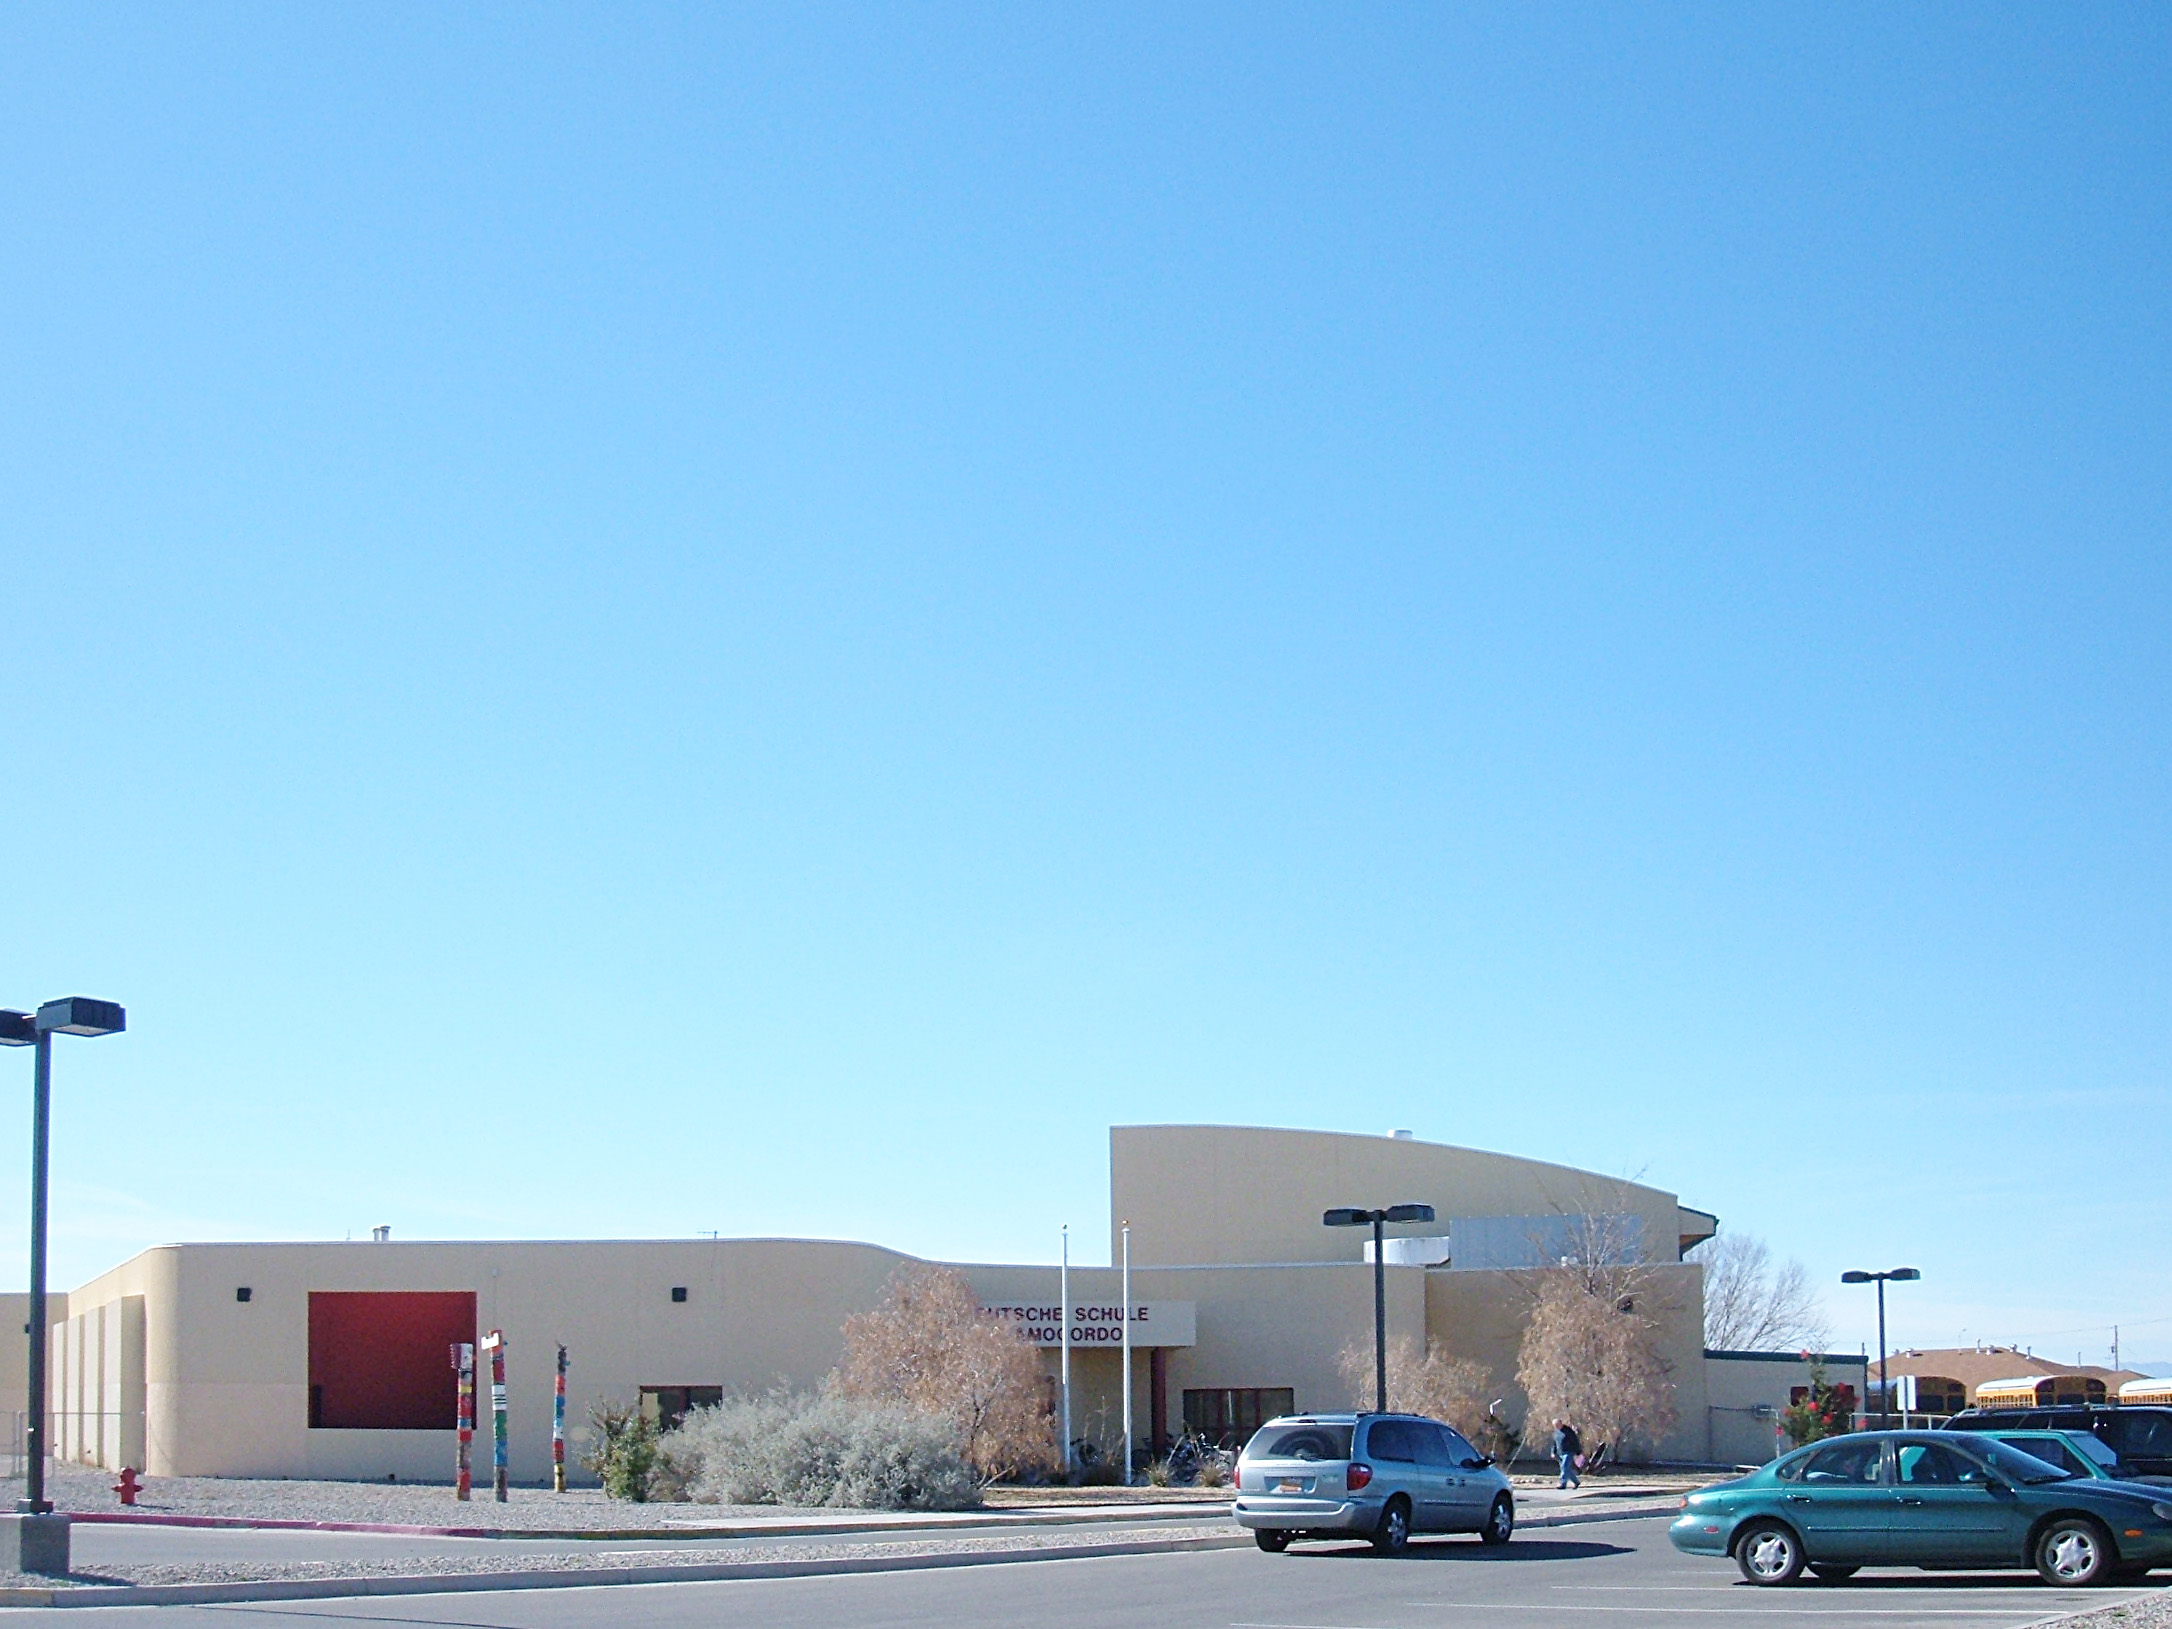 holloman air force base adult sex dating Find people by address using reverse address lookup for 2478 mora loop, holloman air force base, nm 88330 find contact info for current and past residents, property value, and more.